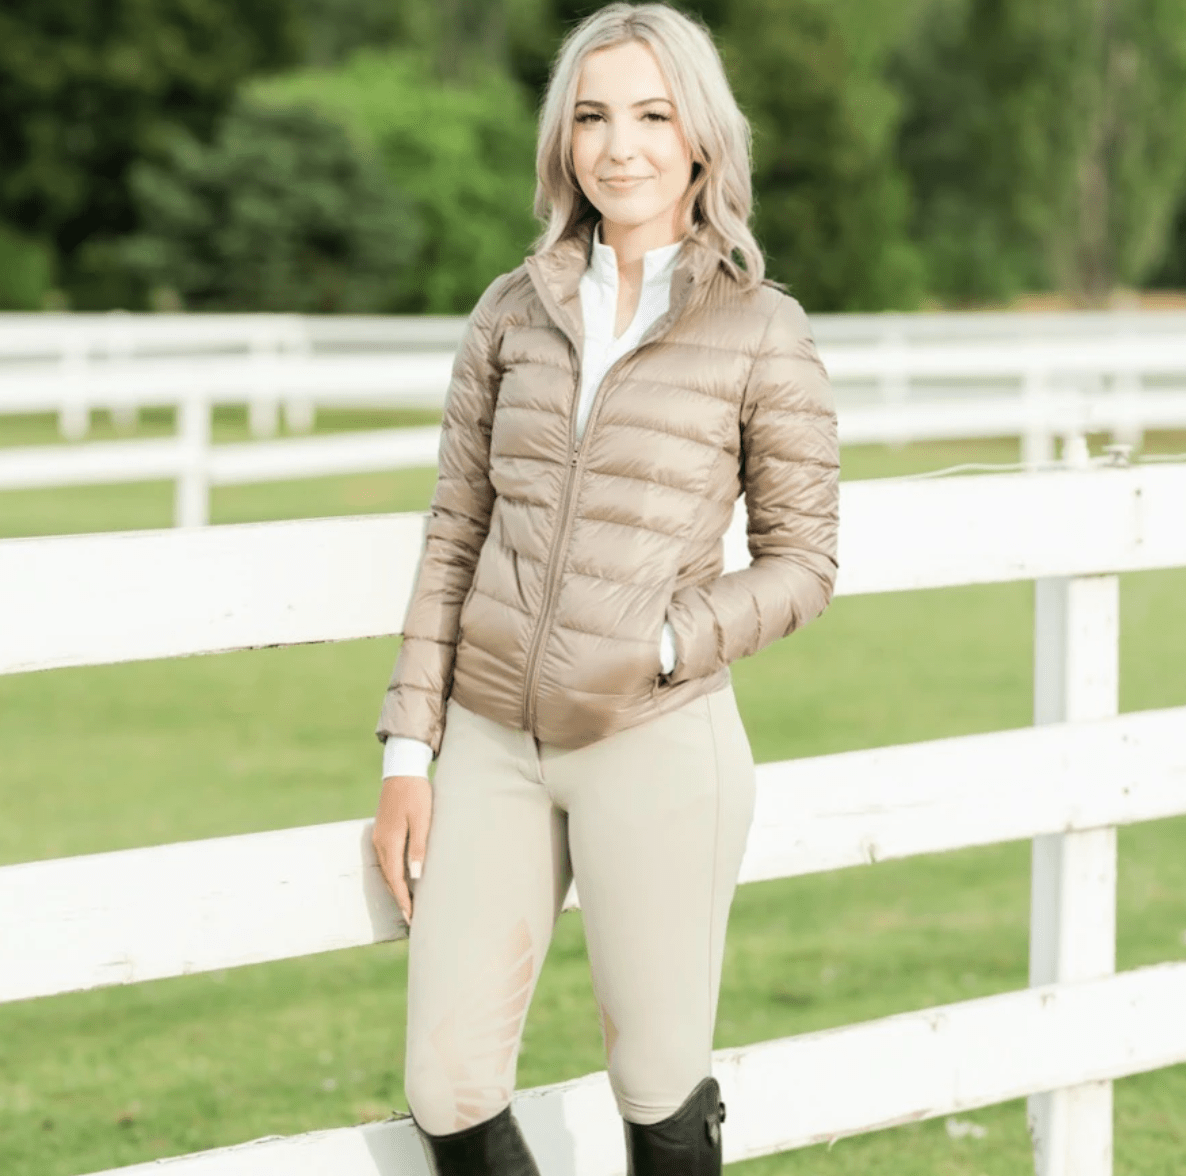 TKEQ Jacket EZ Packable Down Jacket- Champagne equestrian team apparel online tack store mobile tack store custom farm apparel custom show stable clothing equestrian lifestyle horse show clothing riding clothes horses equestrian tack store